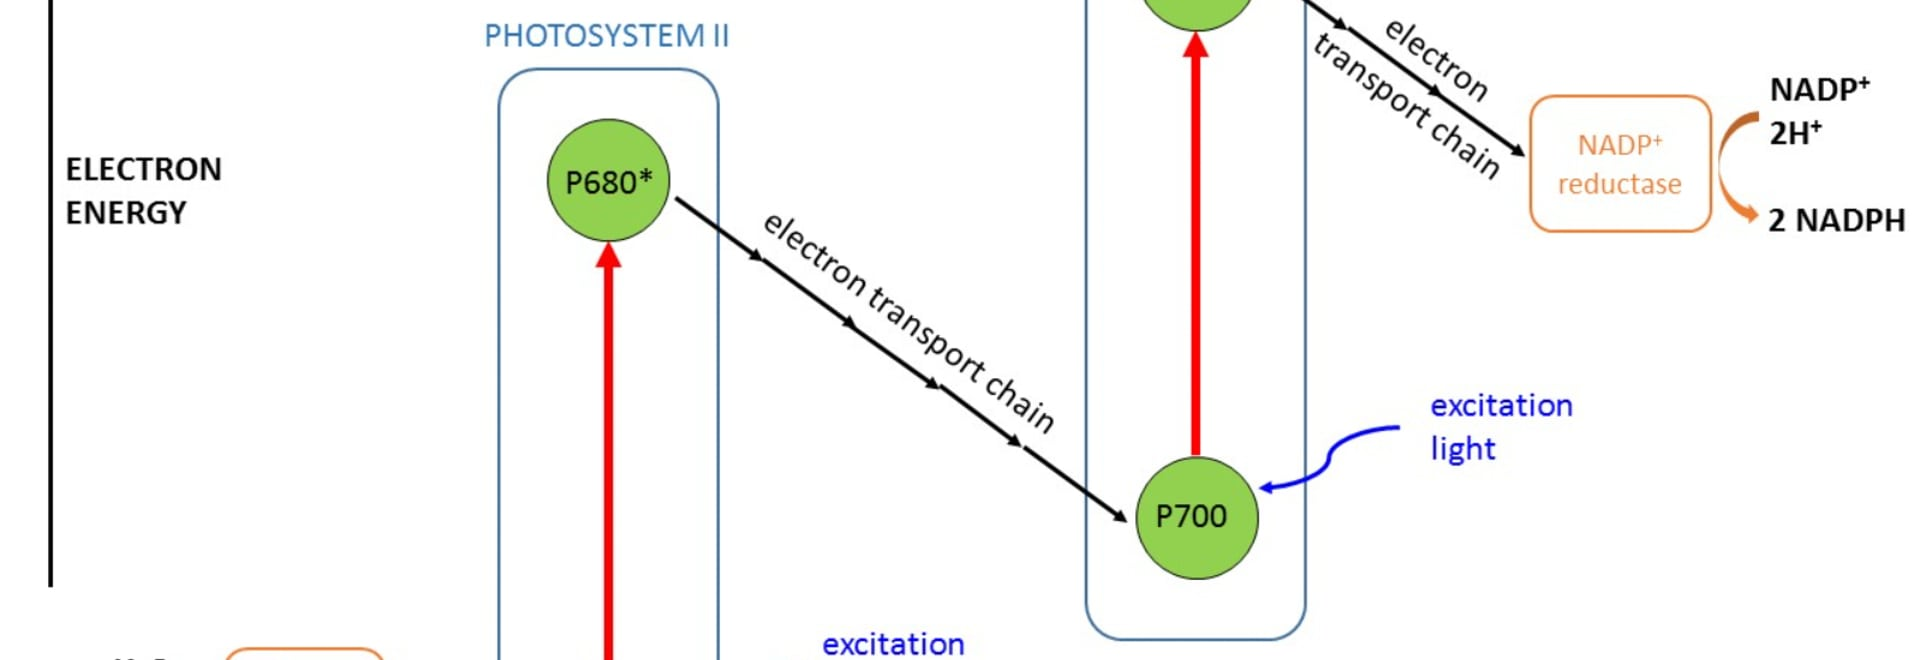 Simplified schematic of the photosynthesis process (Z scheme)